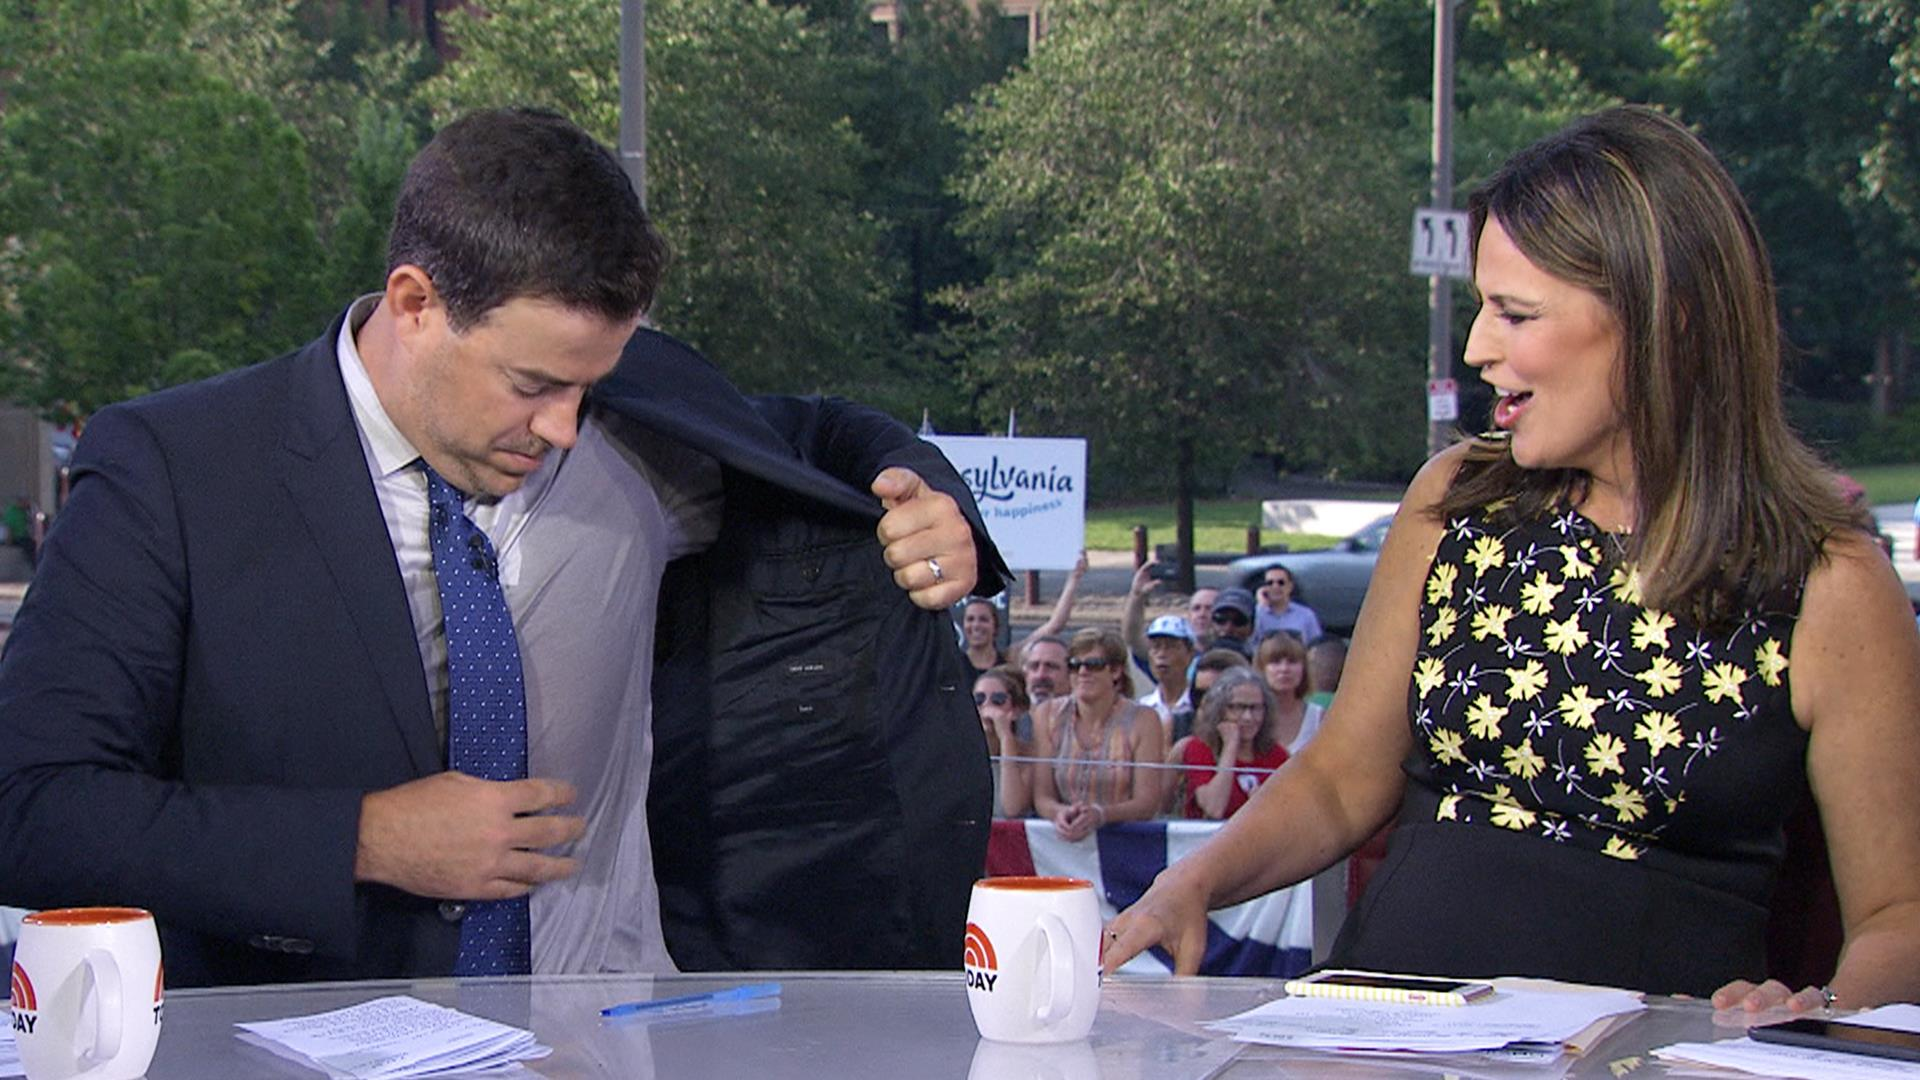 Deodorant discussion has Carson Daly working up a sweat - TODAY.com